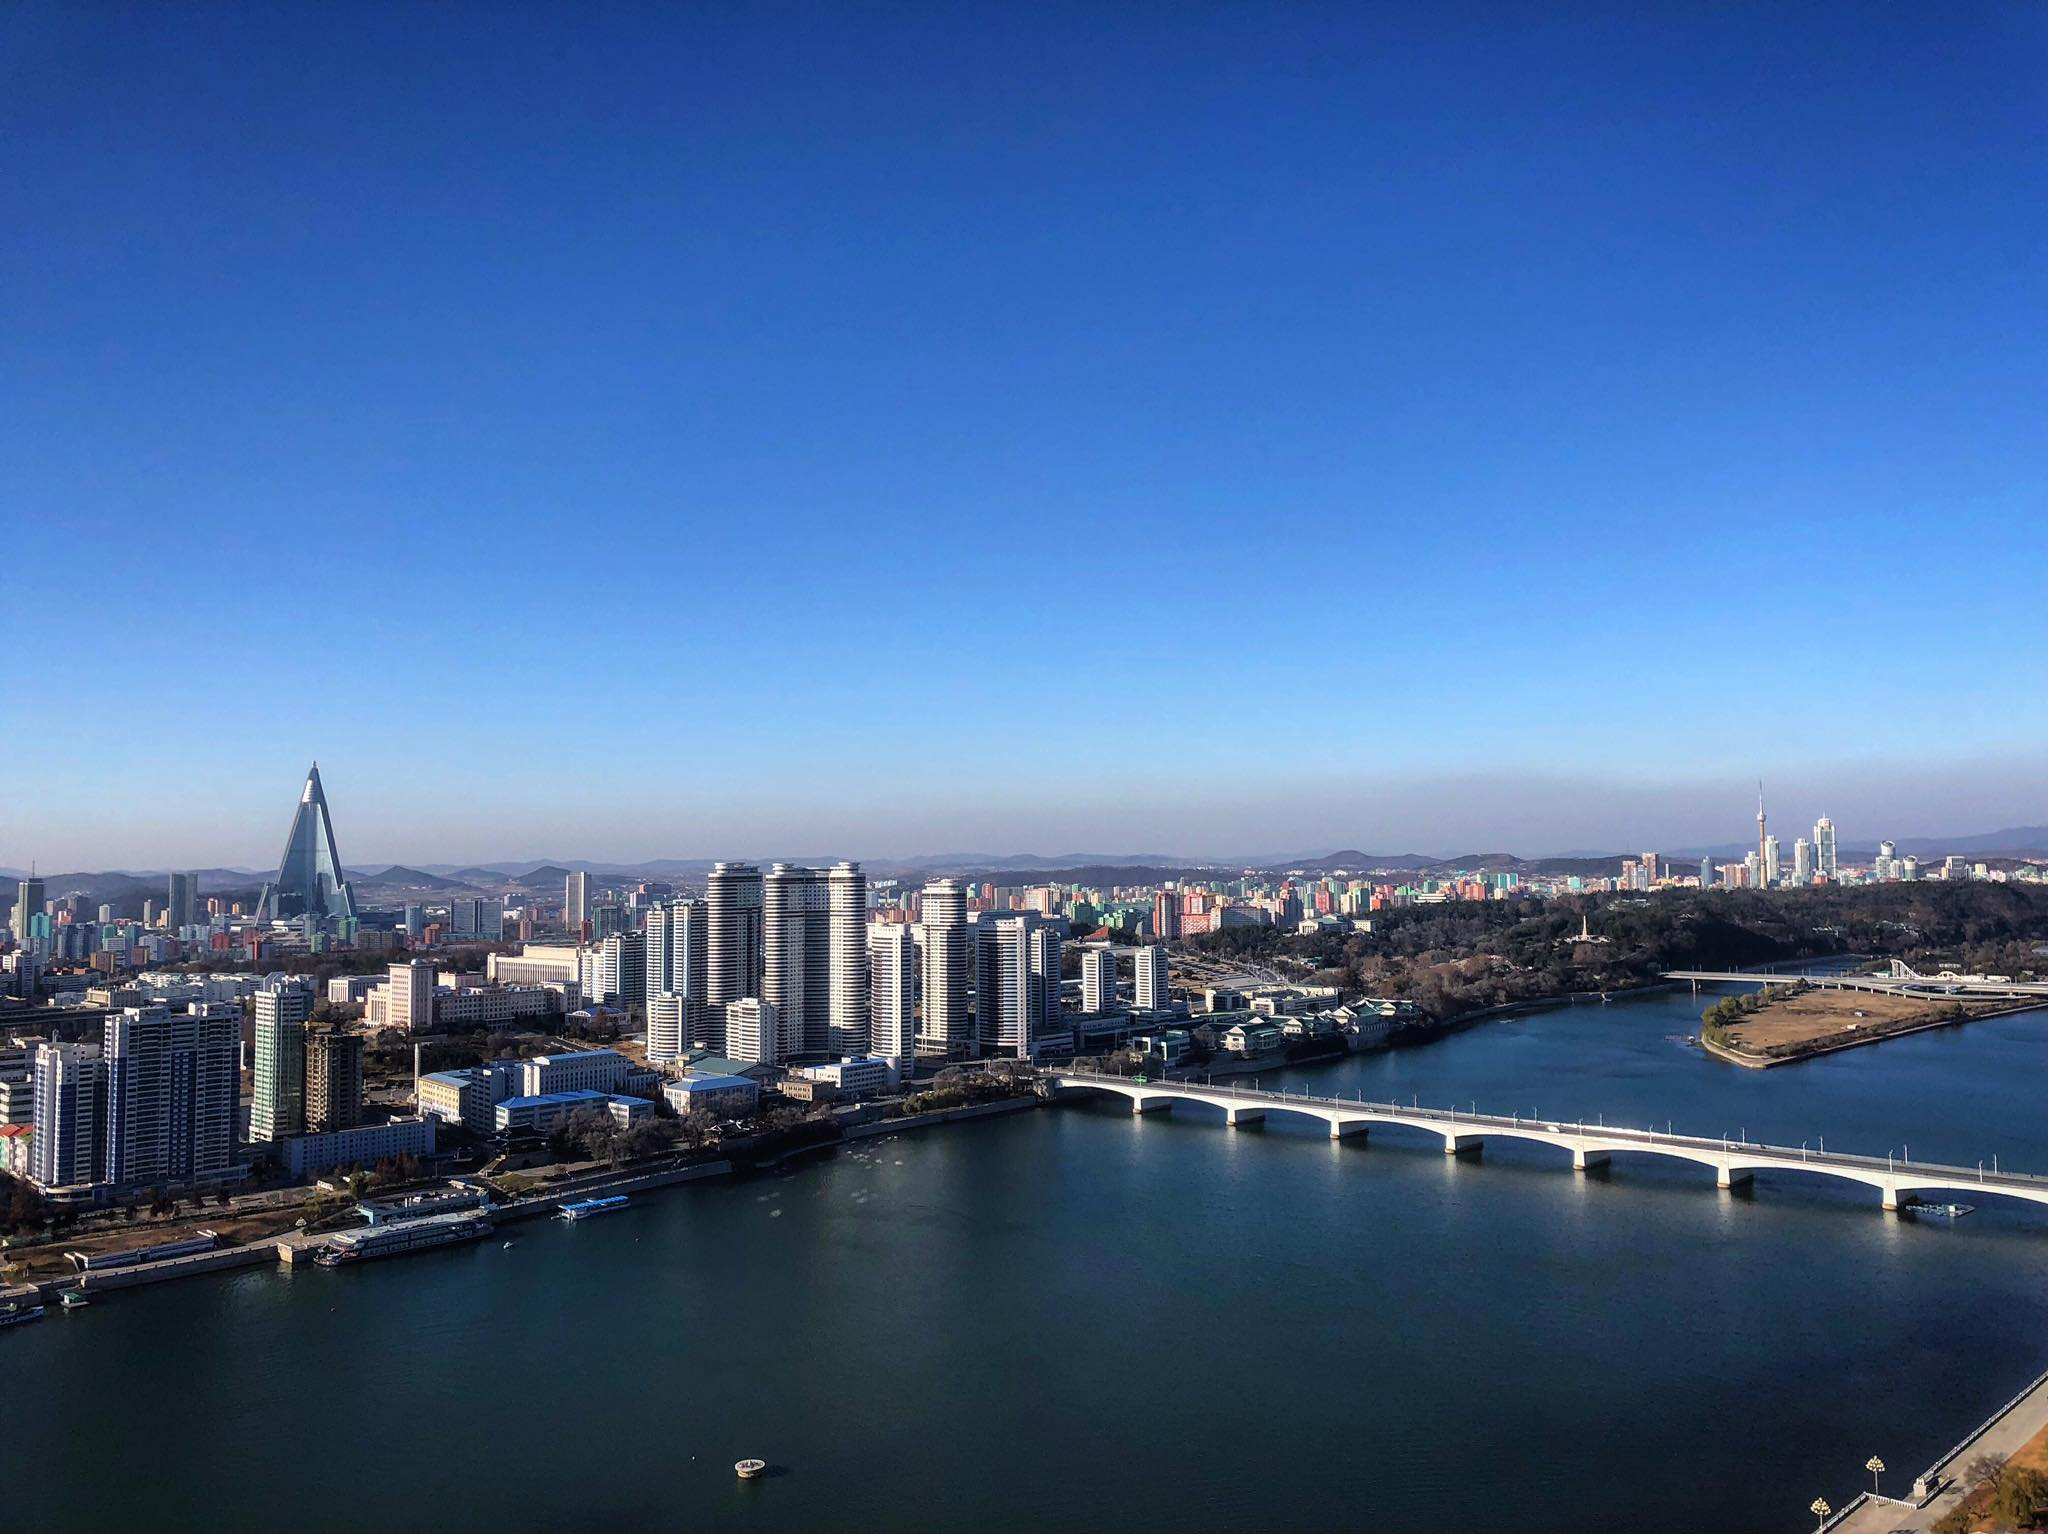 Pyongyang skyline from atop Juche Tower - Photo Credit: Crooked Compass